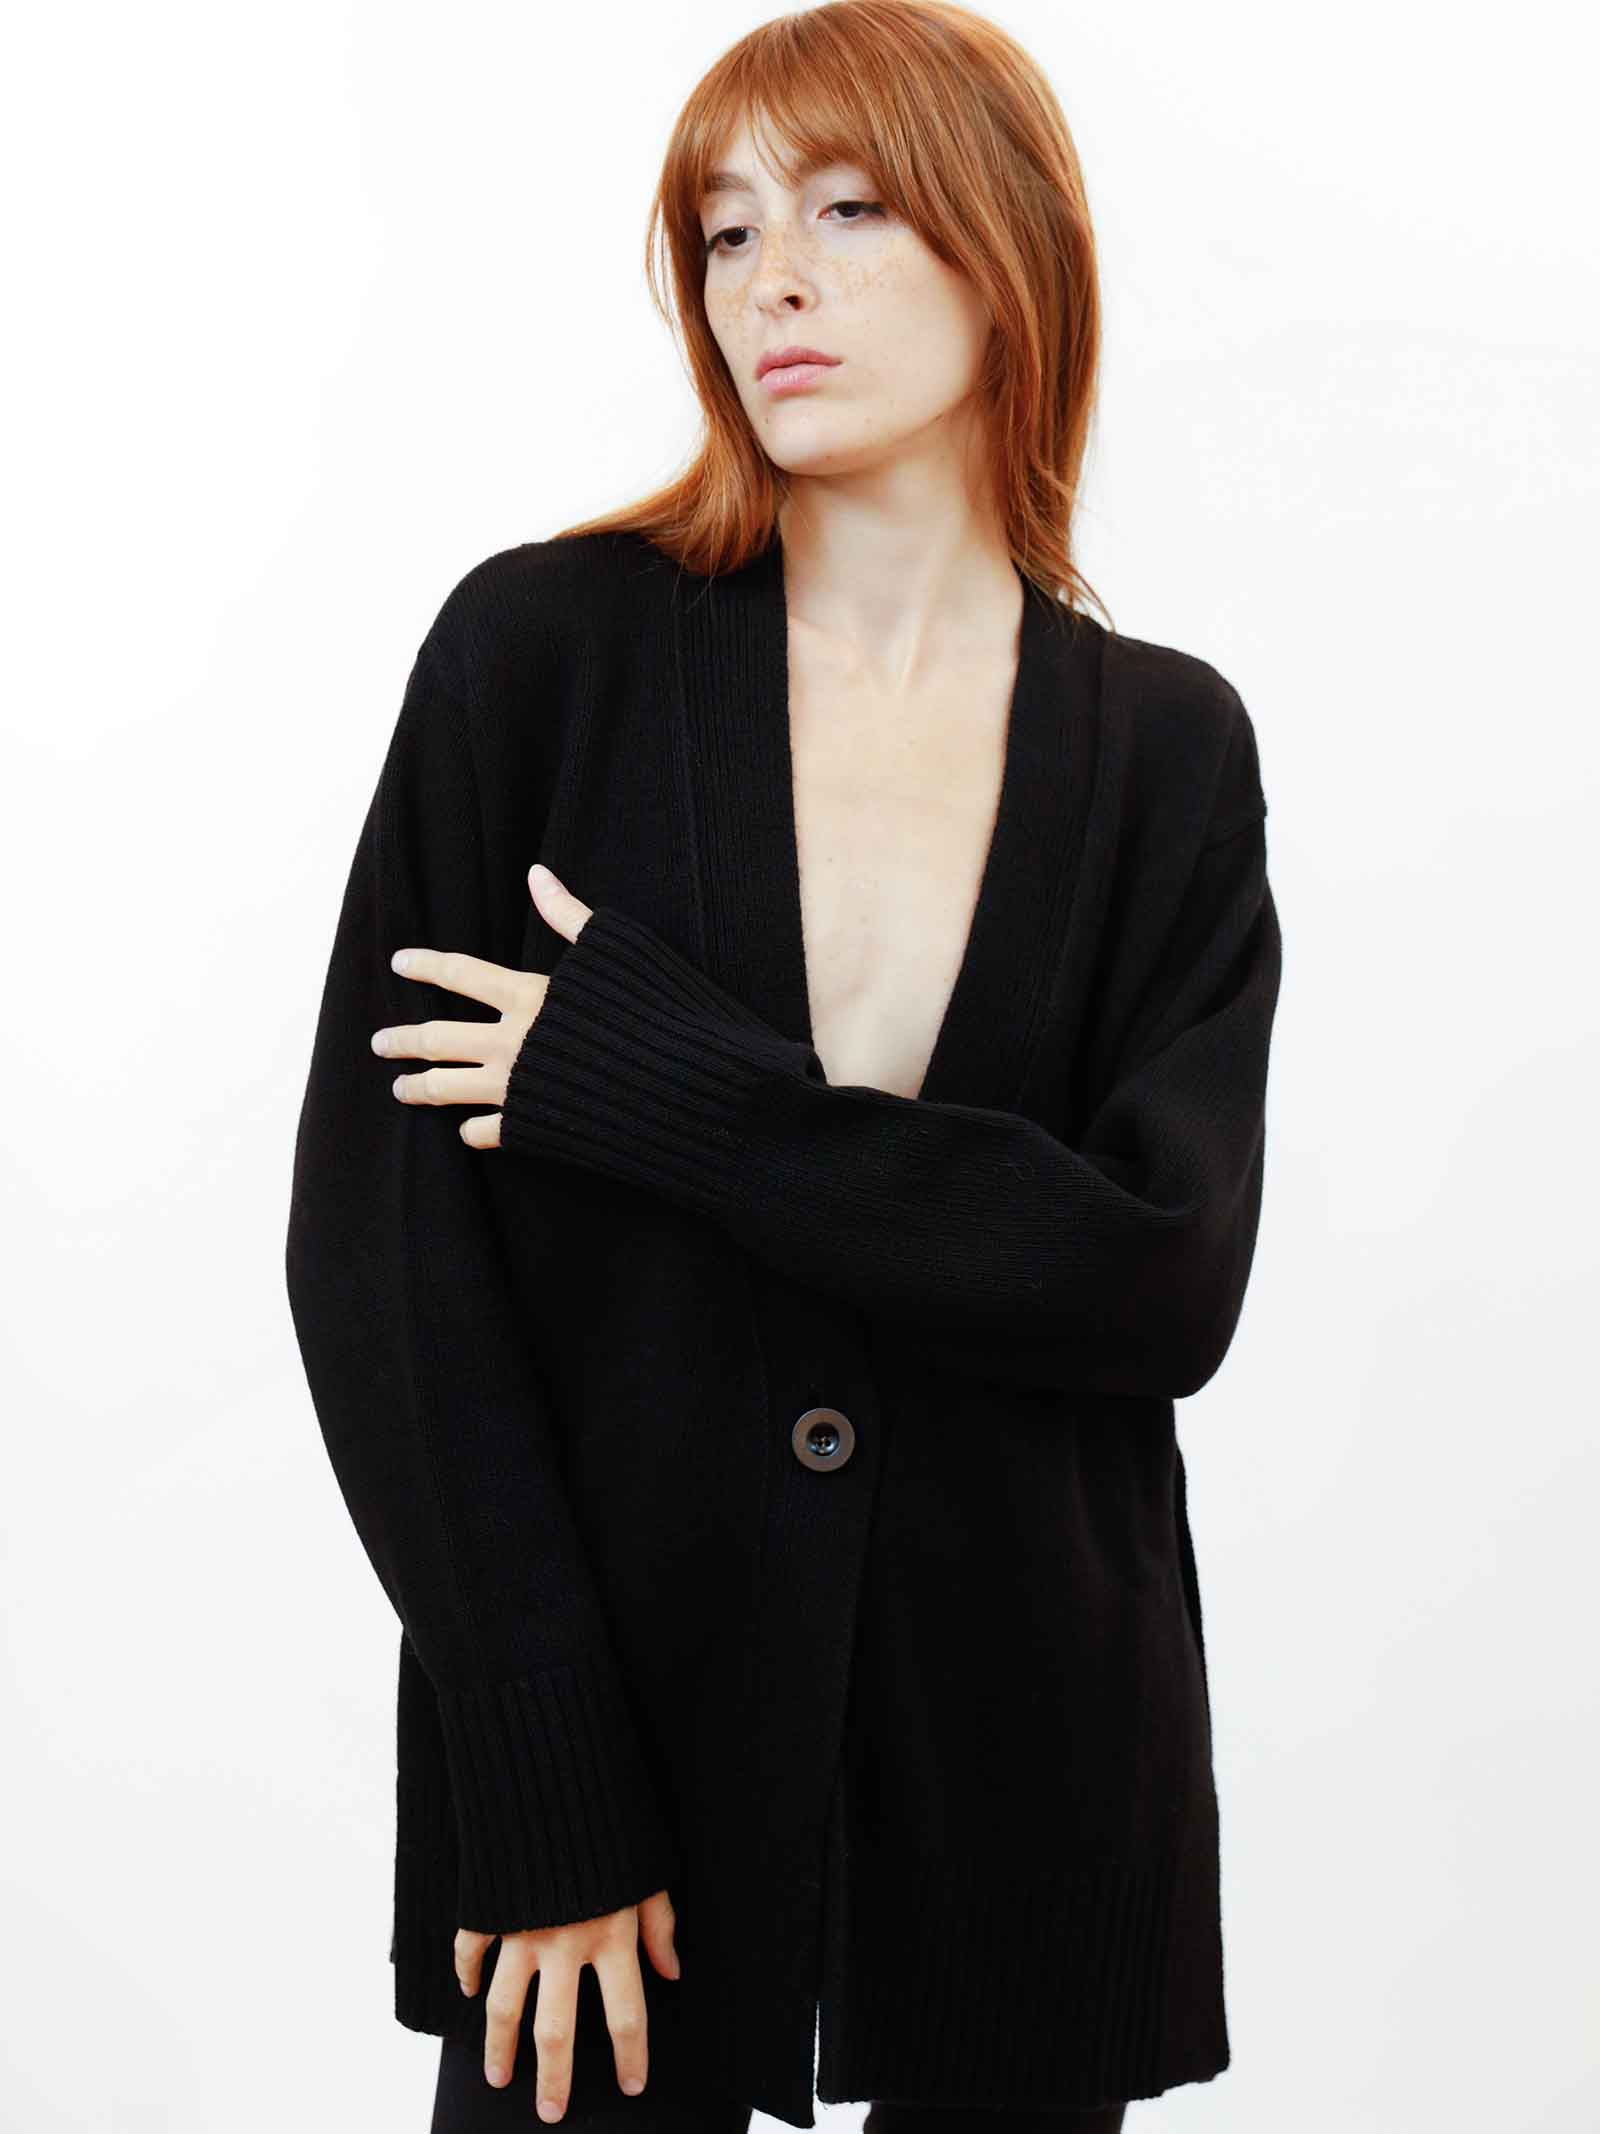 Women's Clothing Maxi Cardigan in Black Cashmere with Matching Buttons Maliparmi | Knitwear | JN35797431520000